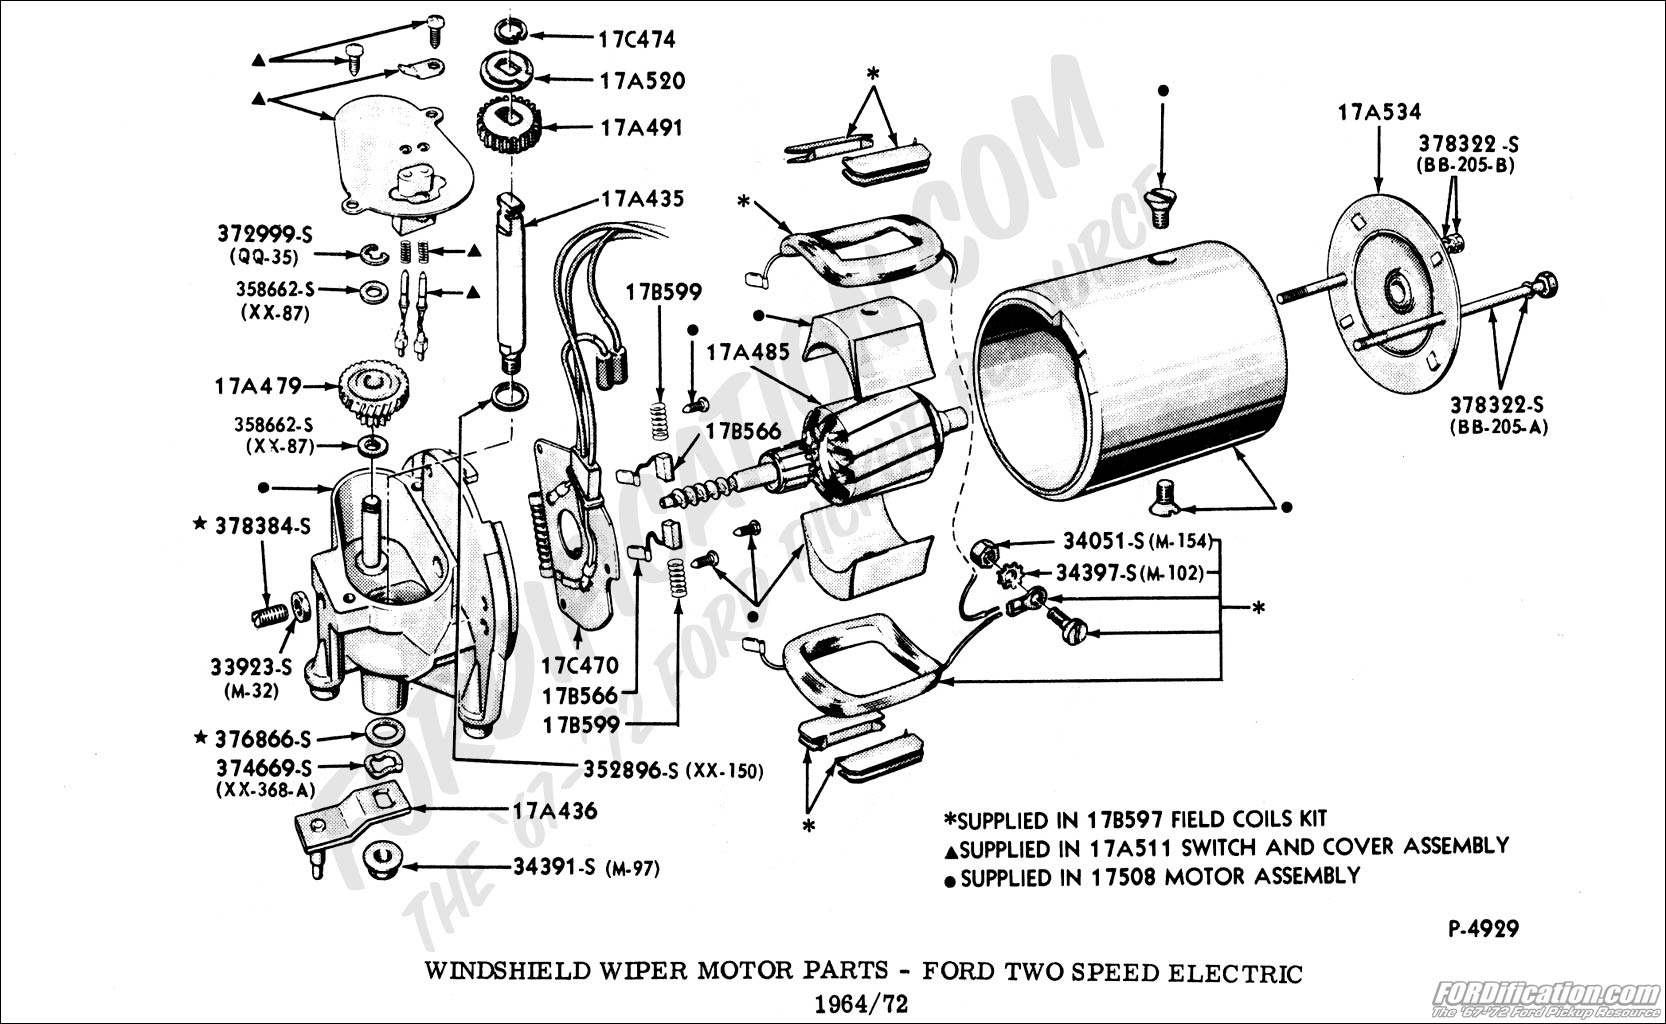 Ford Truck Technical Drawings And Schematics Section I Mercedes Ignition Switch Wiring Diagram Free Download Image Windshield Wiper Motor Parts